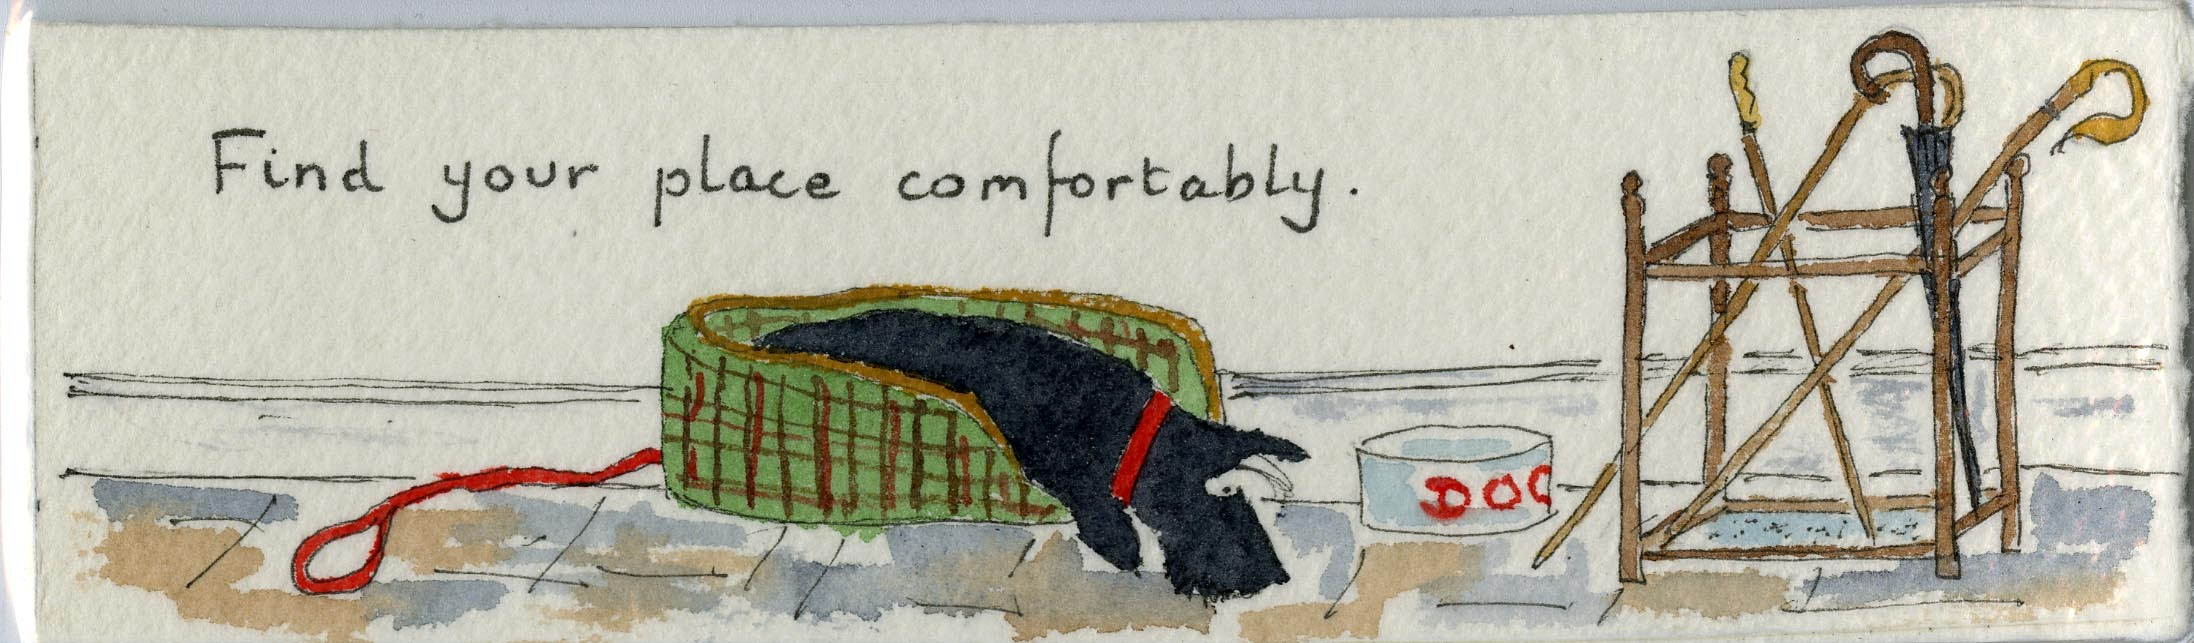 Find Your Place Comfortably bookmark